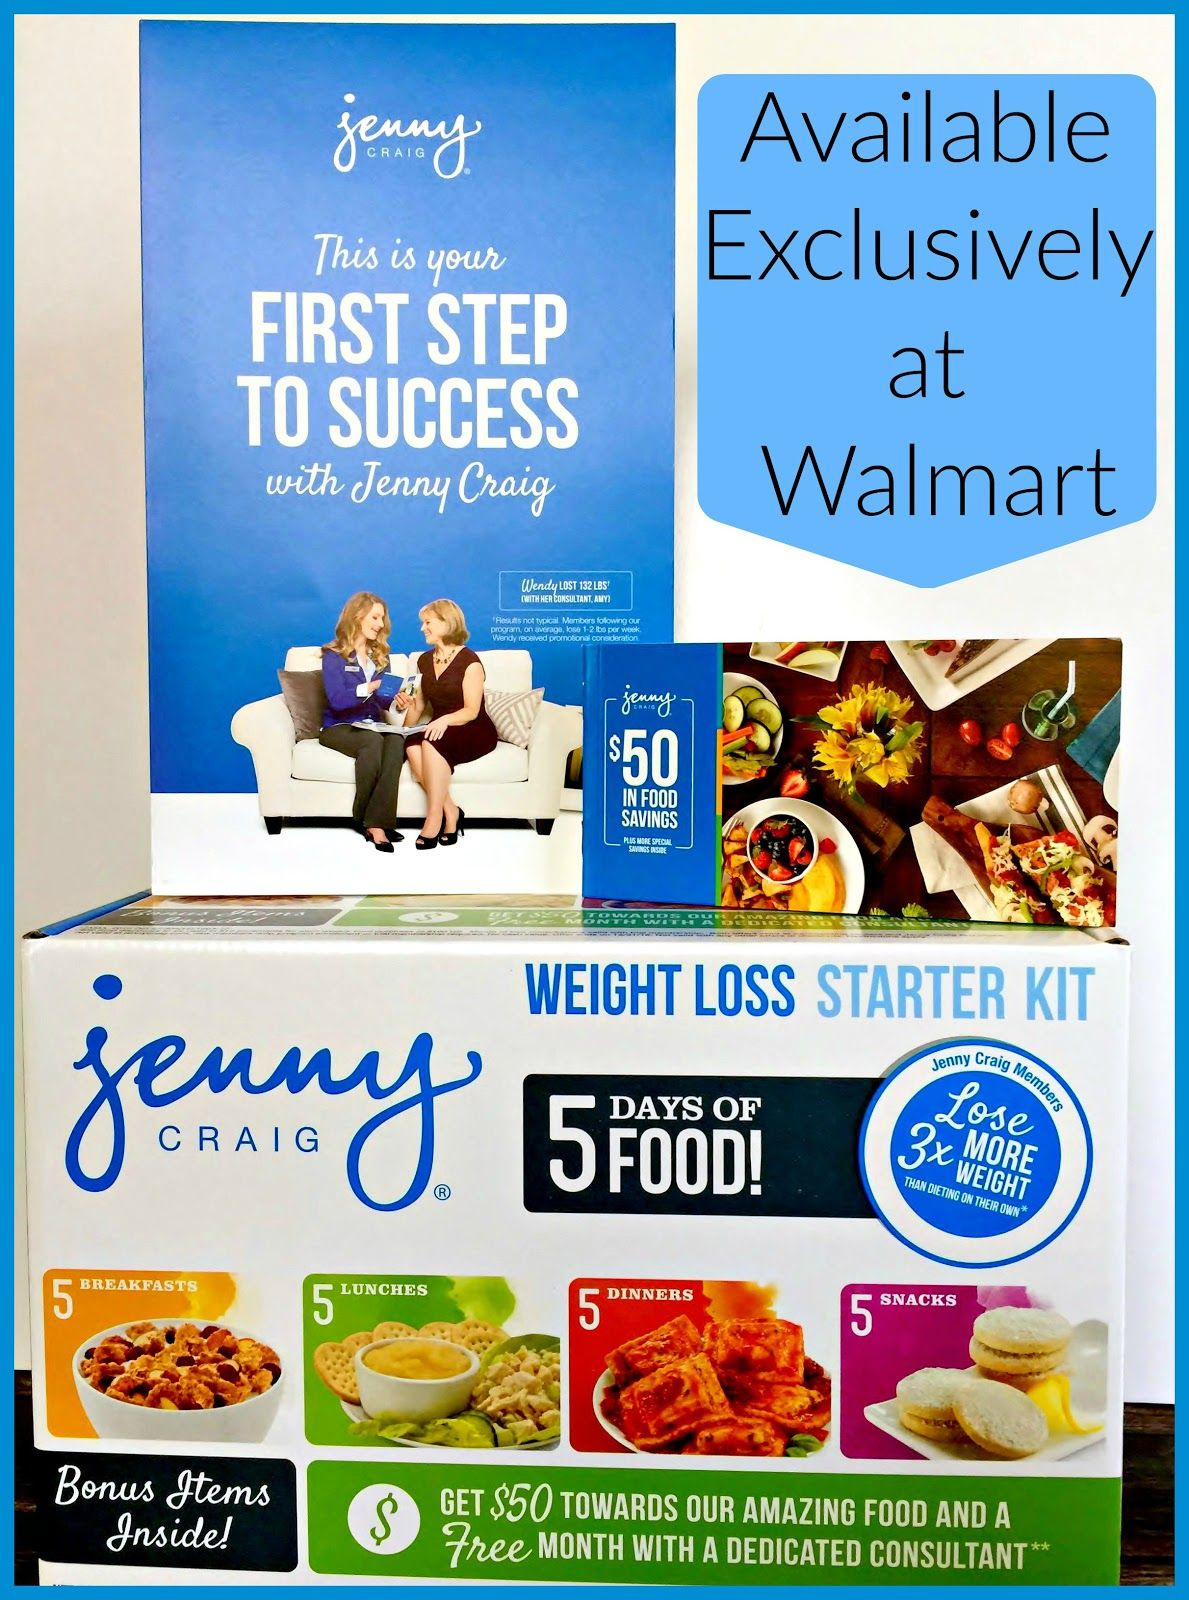 Take that First Step with Jenny Craig 5-Day Weight Loss Starter Kit #JennyCraigKit @Walmart #ad